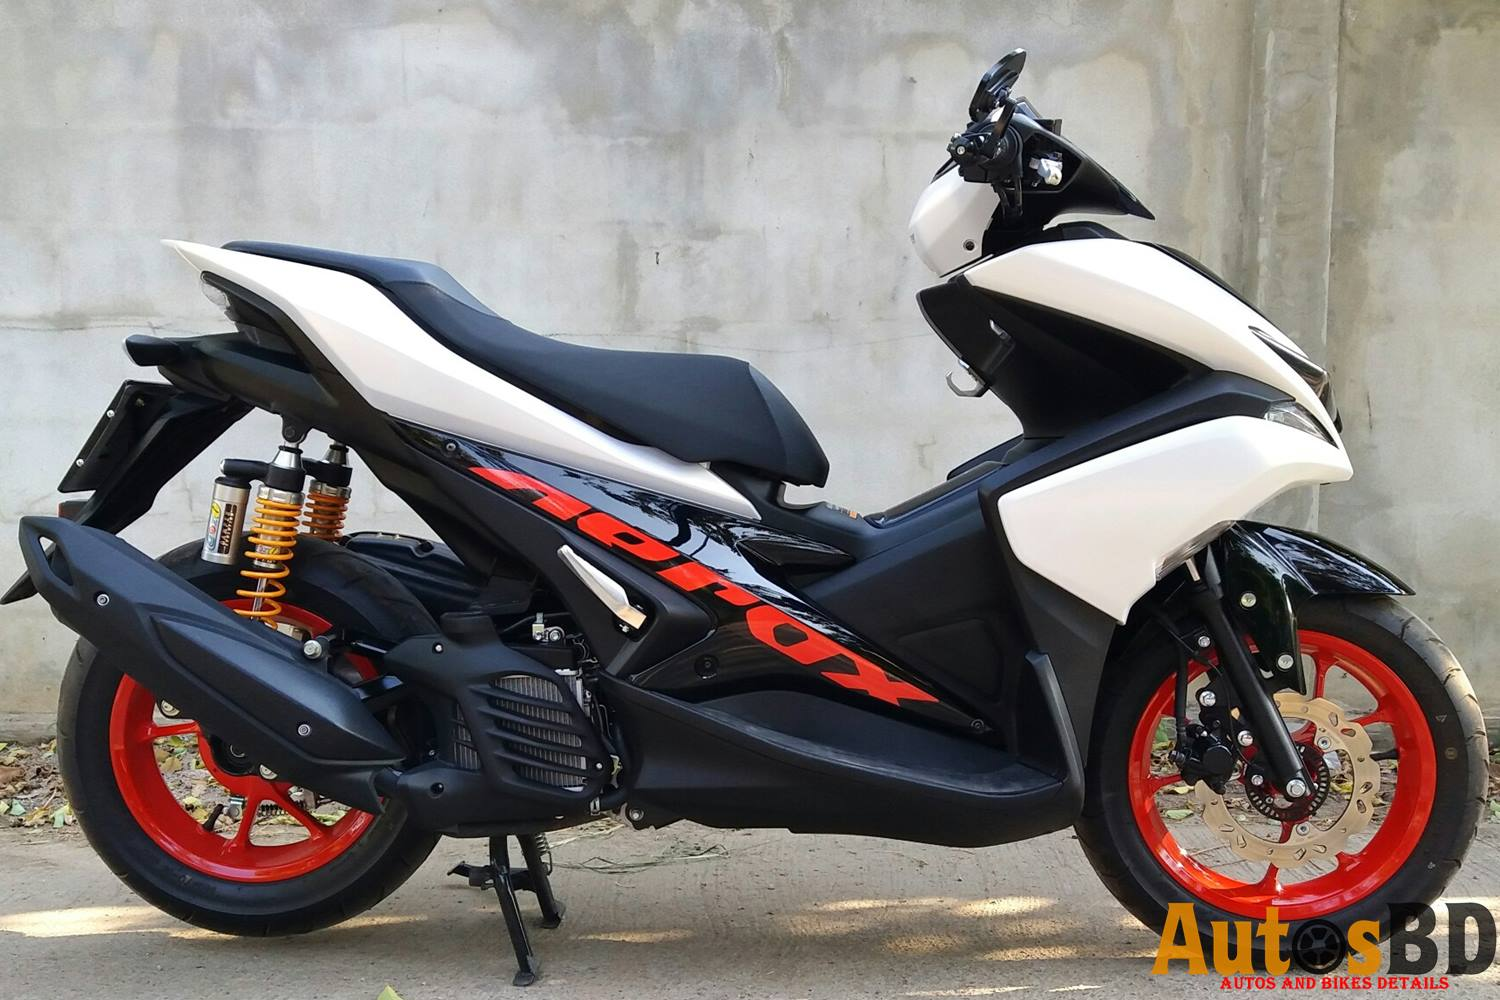 Yamaha Aerox 155 Motorcycle Price in Bangladesh